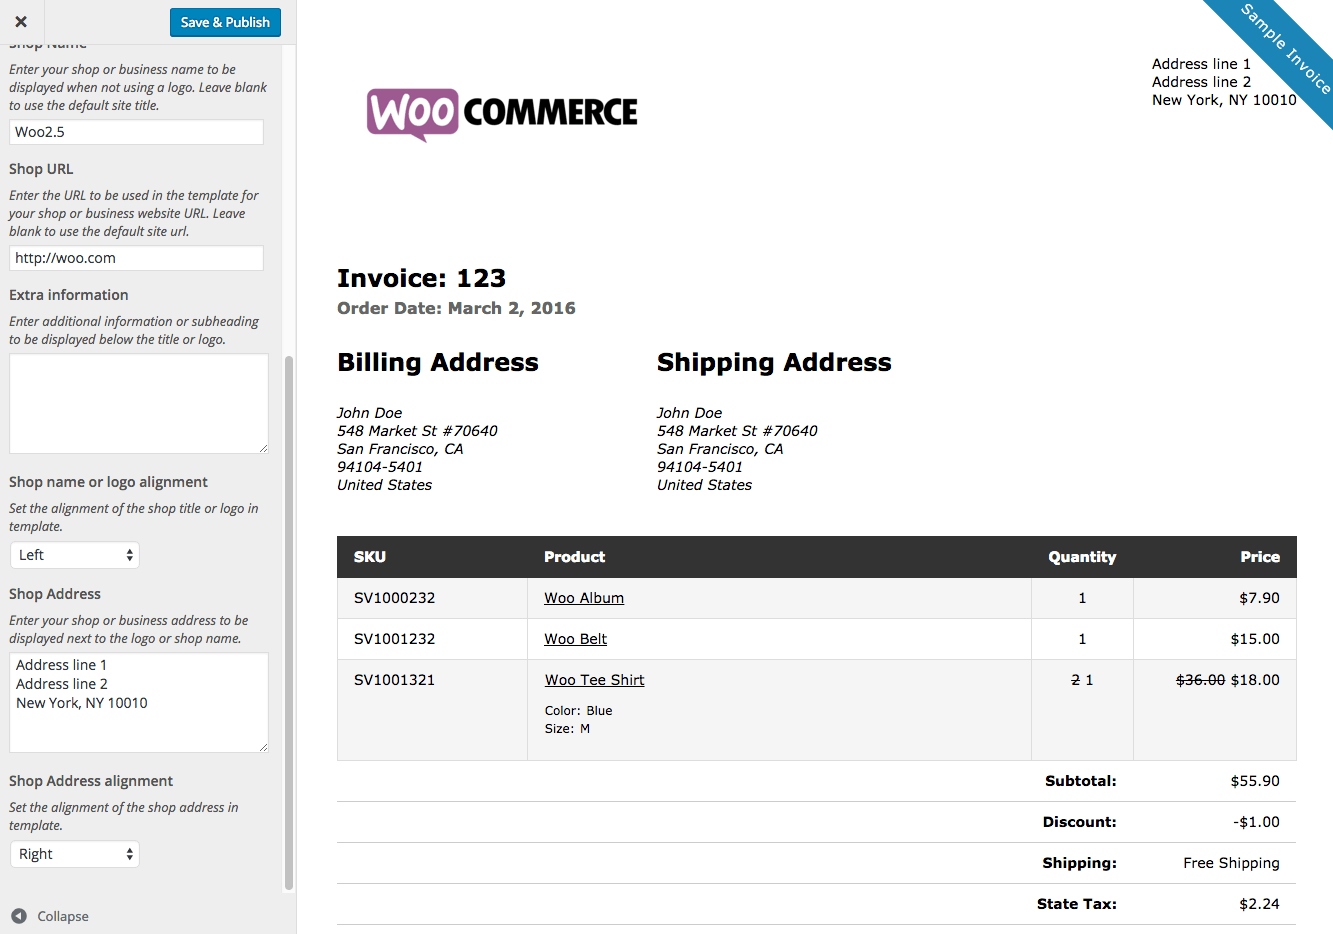 Coachoutletonlineplusus  Surprising Print Invoices Amp Packing Lists  Woocommerce With Lovable Woocommerce Print Invoices  Packing Lists Customizer With Amusing Are Receipts Recyclable Also Receipt Software In Addition Petty Cash Receipt And Personalized Receipt Books As Well As H M Return Without Receipt Additionally How To Fill Out A Rent Receipt From Woocommercecom With Coachoutletonlineplusus  Lovable Print Invoices Amp Packing Lists  Woocommerce With Amusing Woocommerce Print Invoices  Packing Lists Customizer And Surprising Are Receipts Recyclable Also Receipt Software In Addition Petty Cash Receipt From Woocommercecom